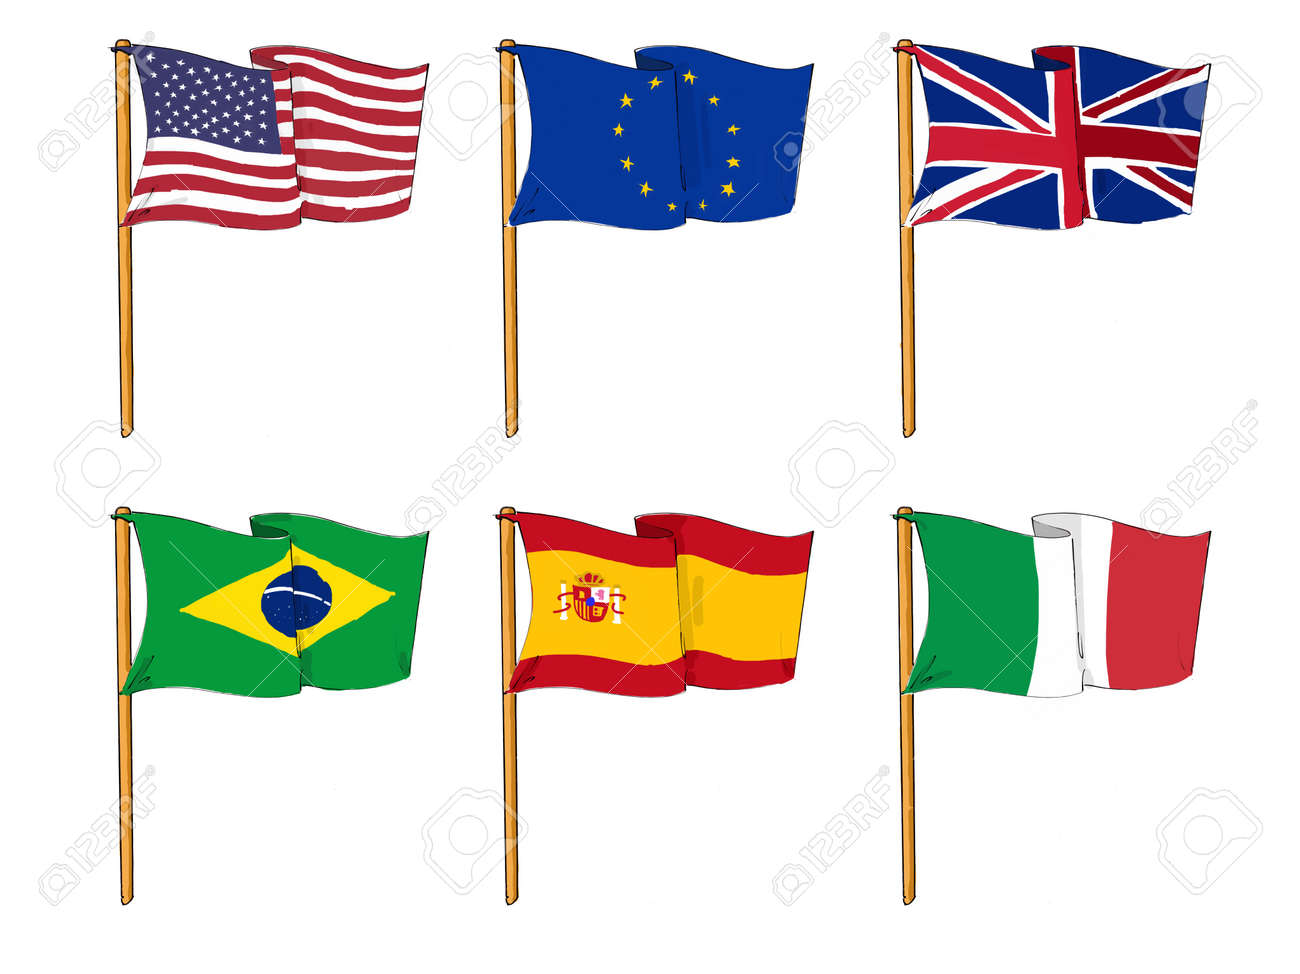 cartoon like drawings of some of the most popular flags in the rh 123rf com cartoon flags blue one cartoon flashing blue lights police car